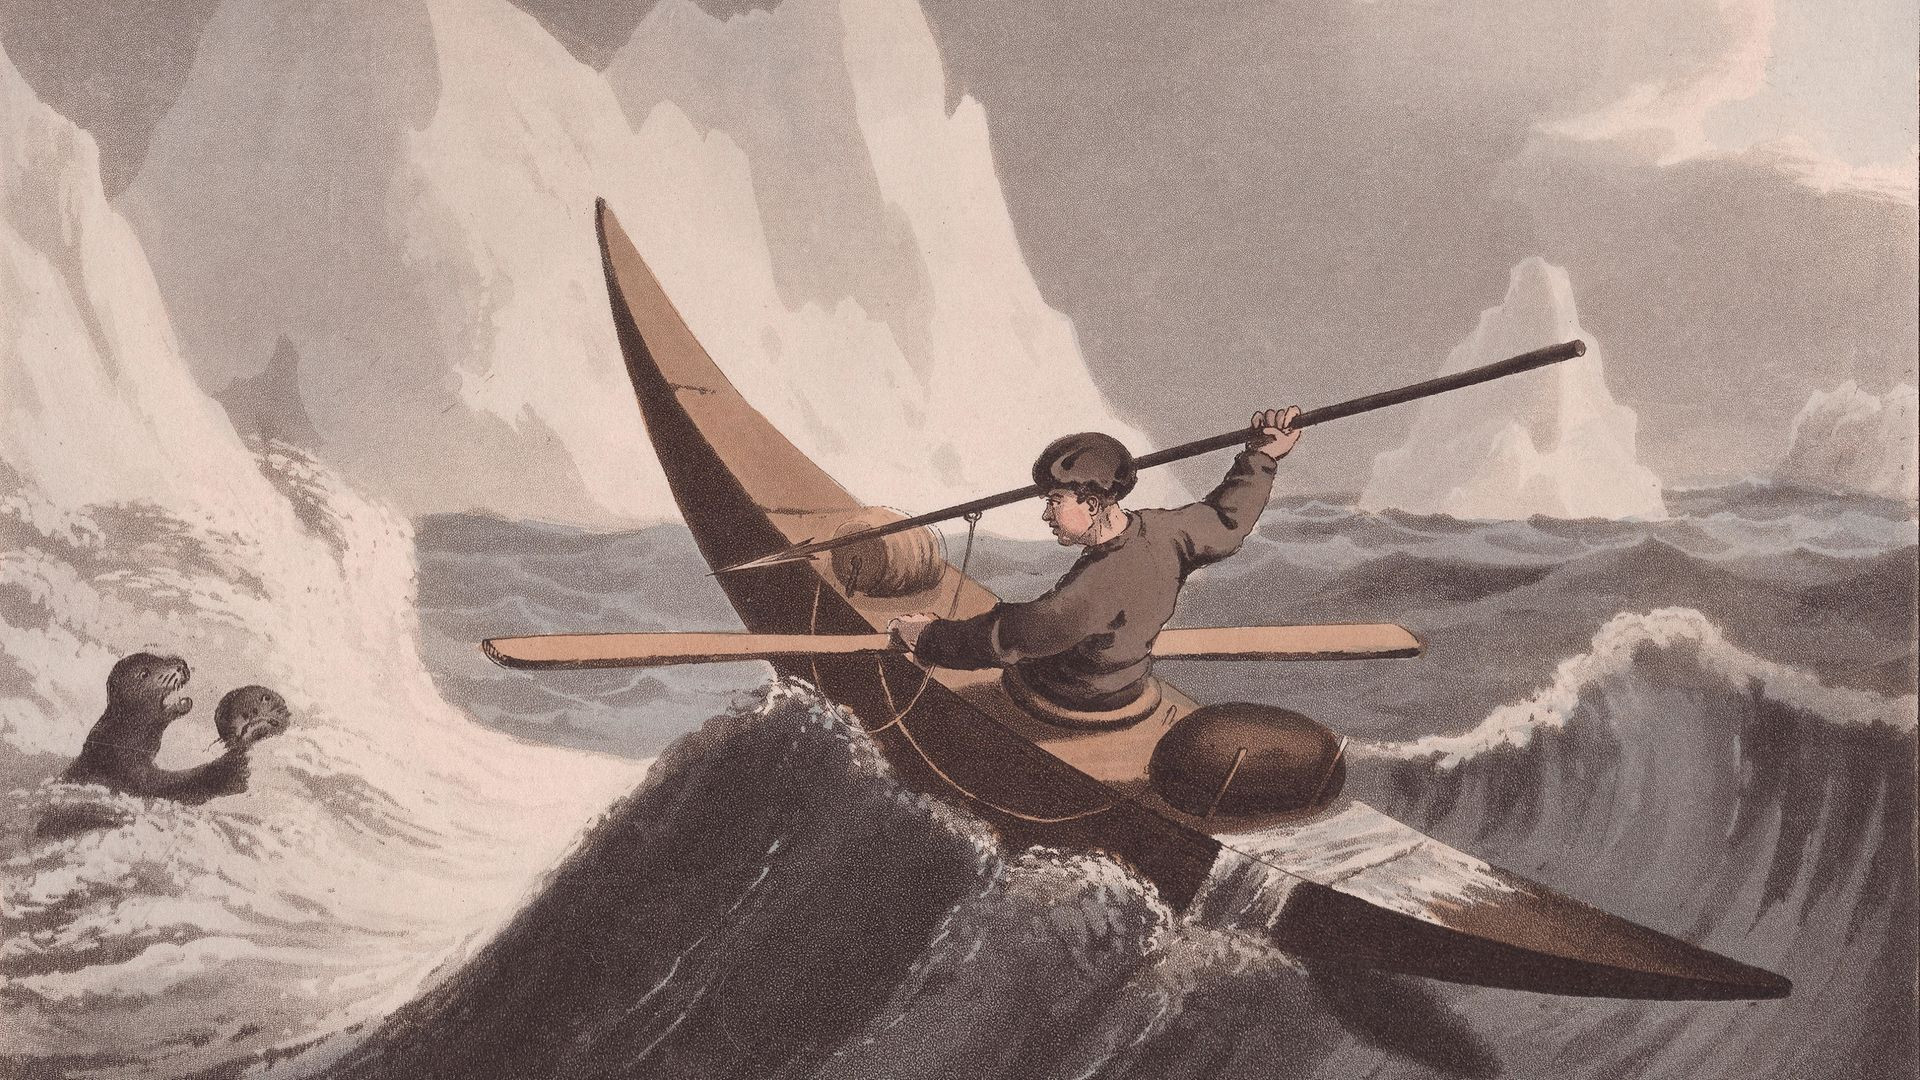 SCOTLAND BOUND? An Inuit hunts a seal off Greenland in a 19th century image - Credit: Corbis via Getty Images